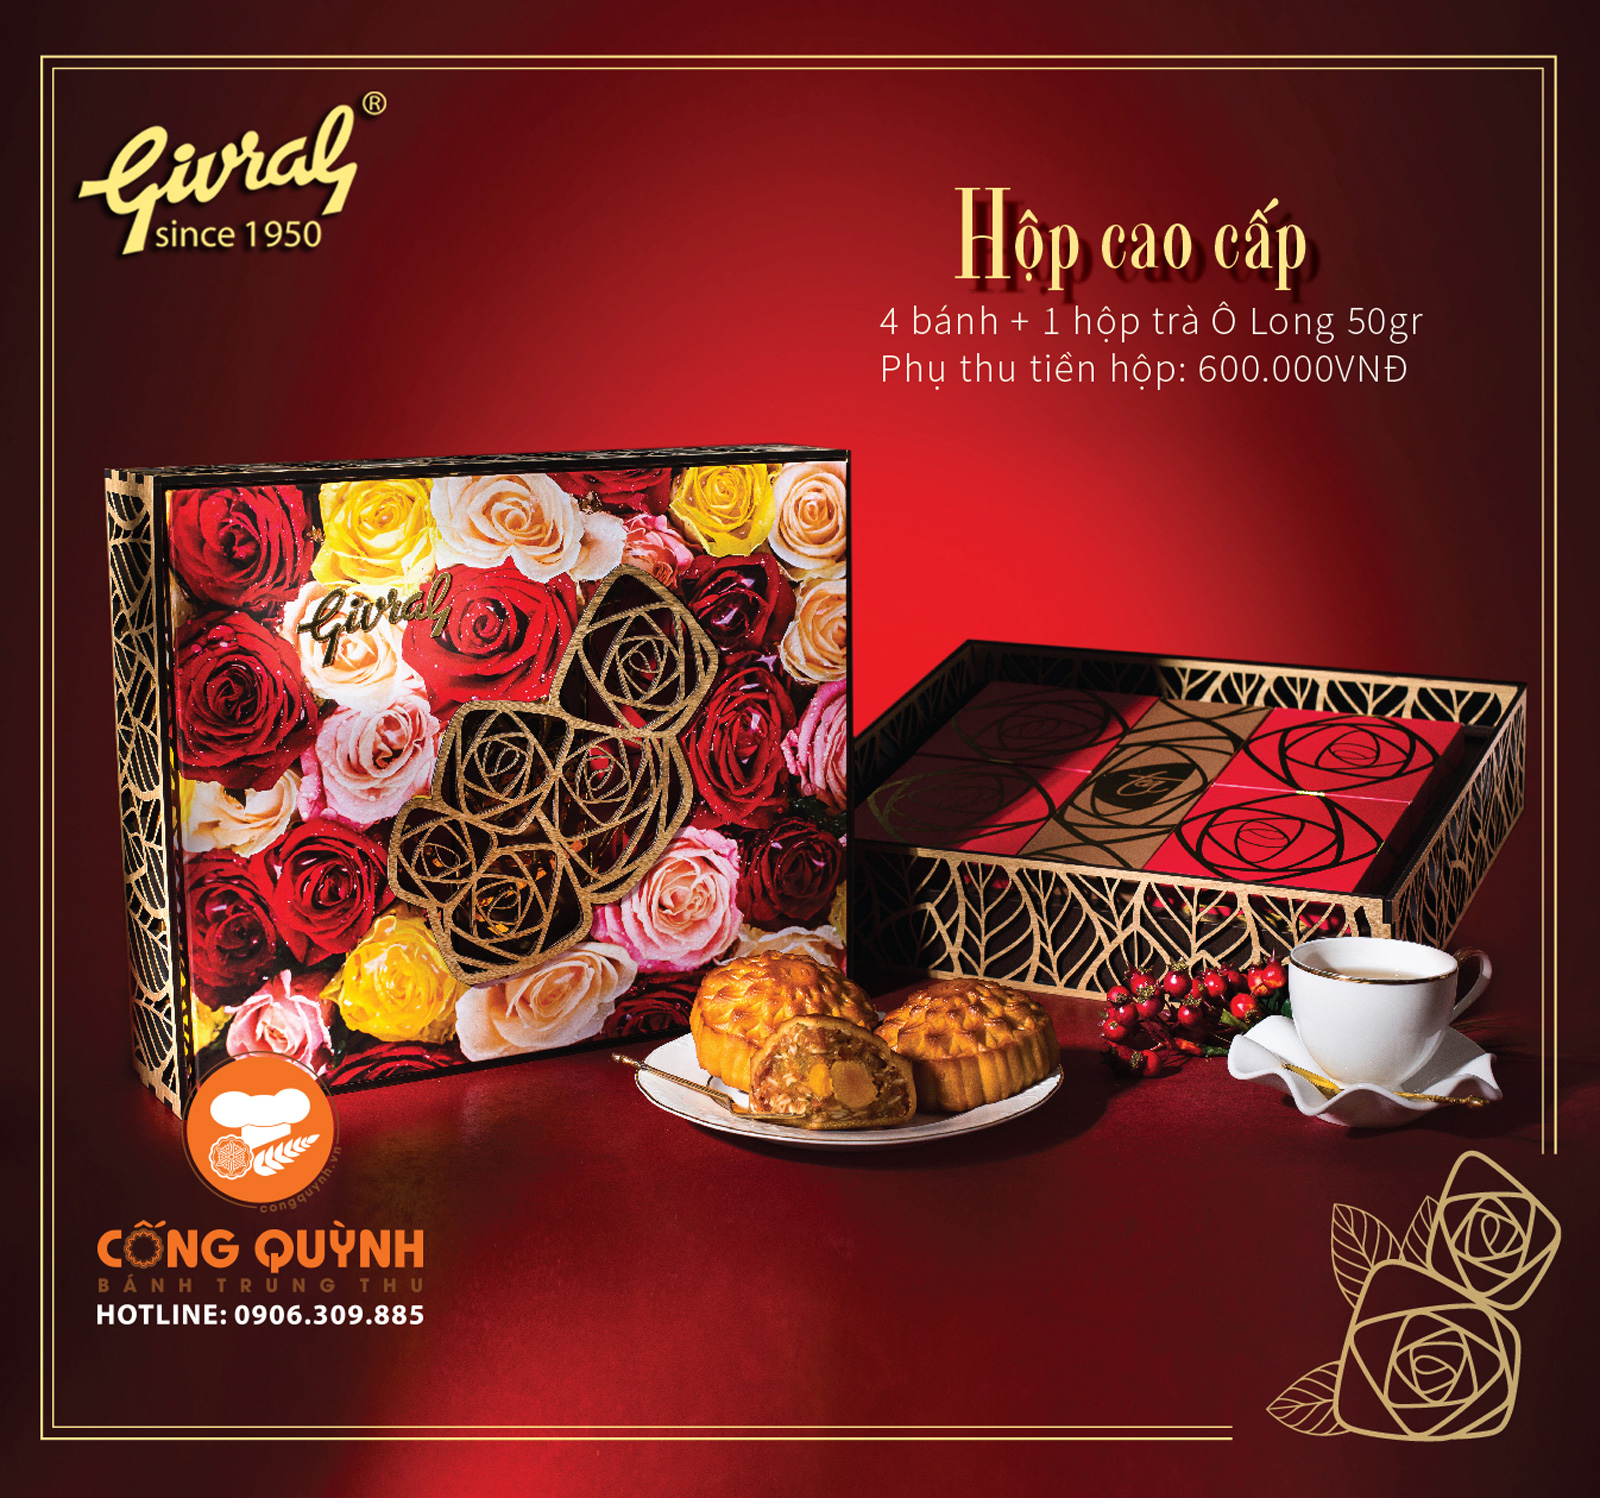 hộp cao cấp givral 2019